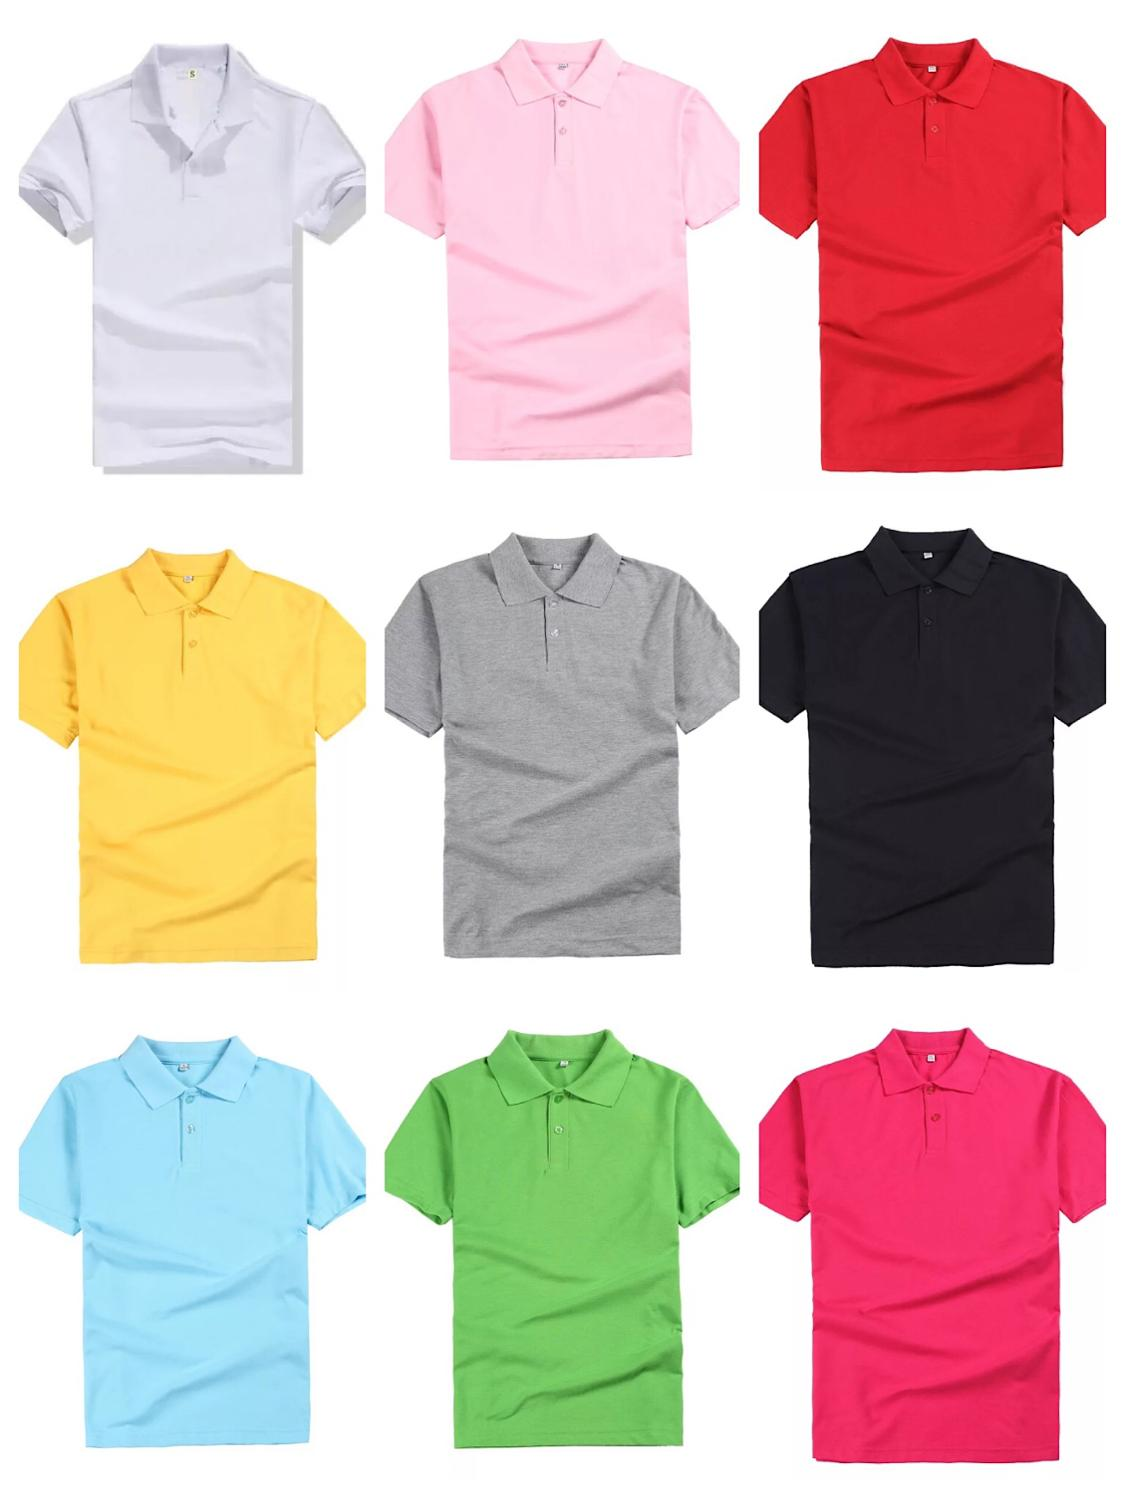 men's and women's   polo   shirts casual color cotton overalls 12 color   polo   shirts with short sleeves can custom name logo